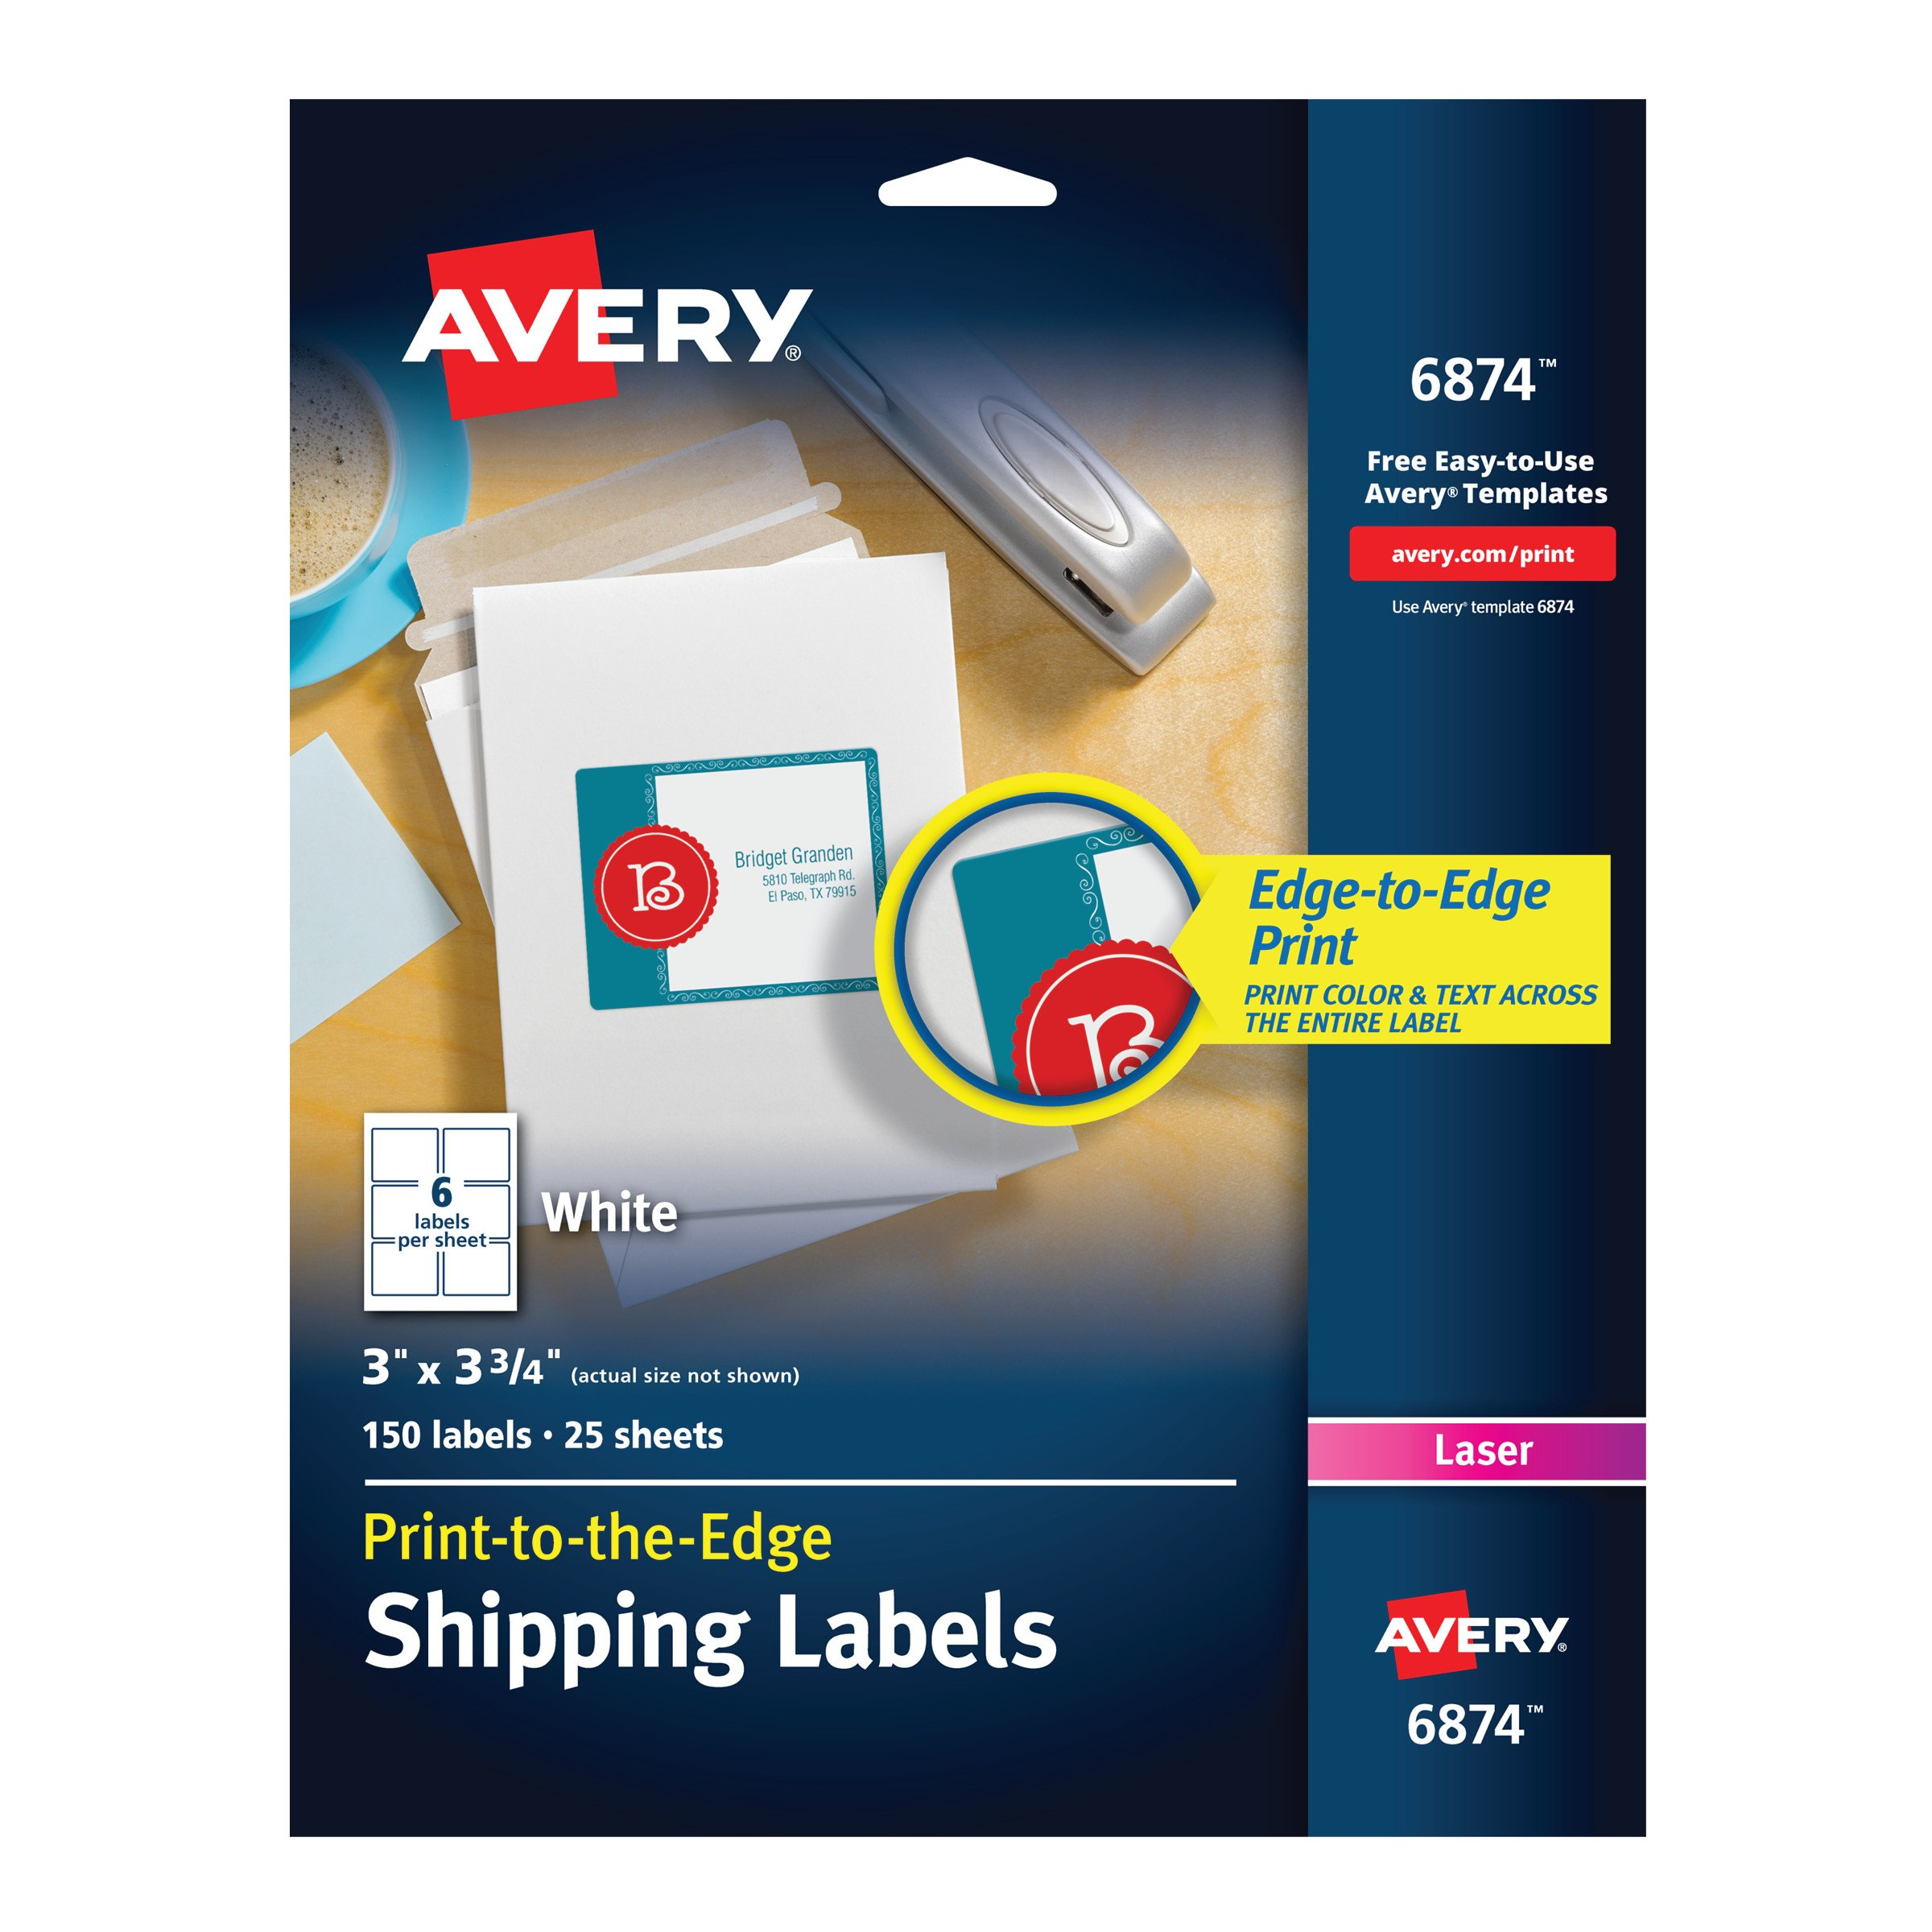 Amazon Avery White Laser Labels For Color Printing 3 X 3 34